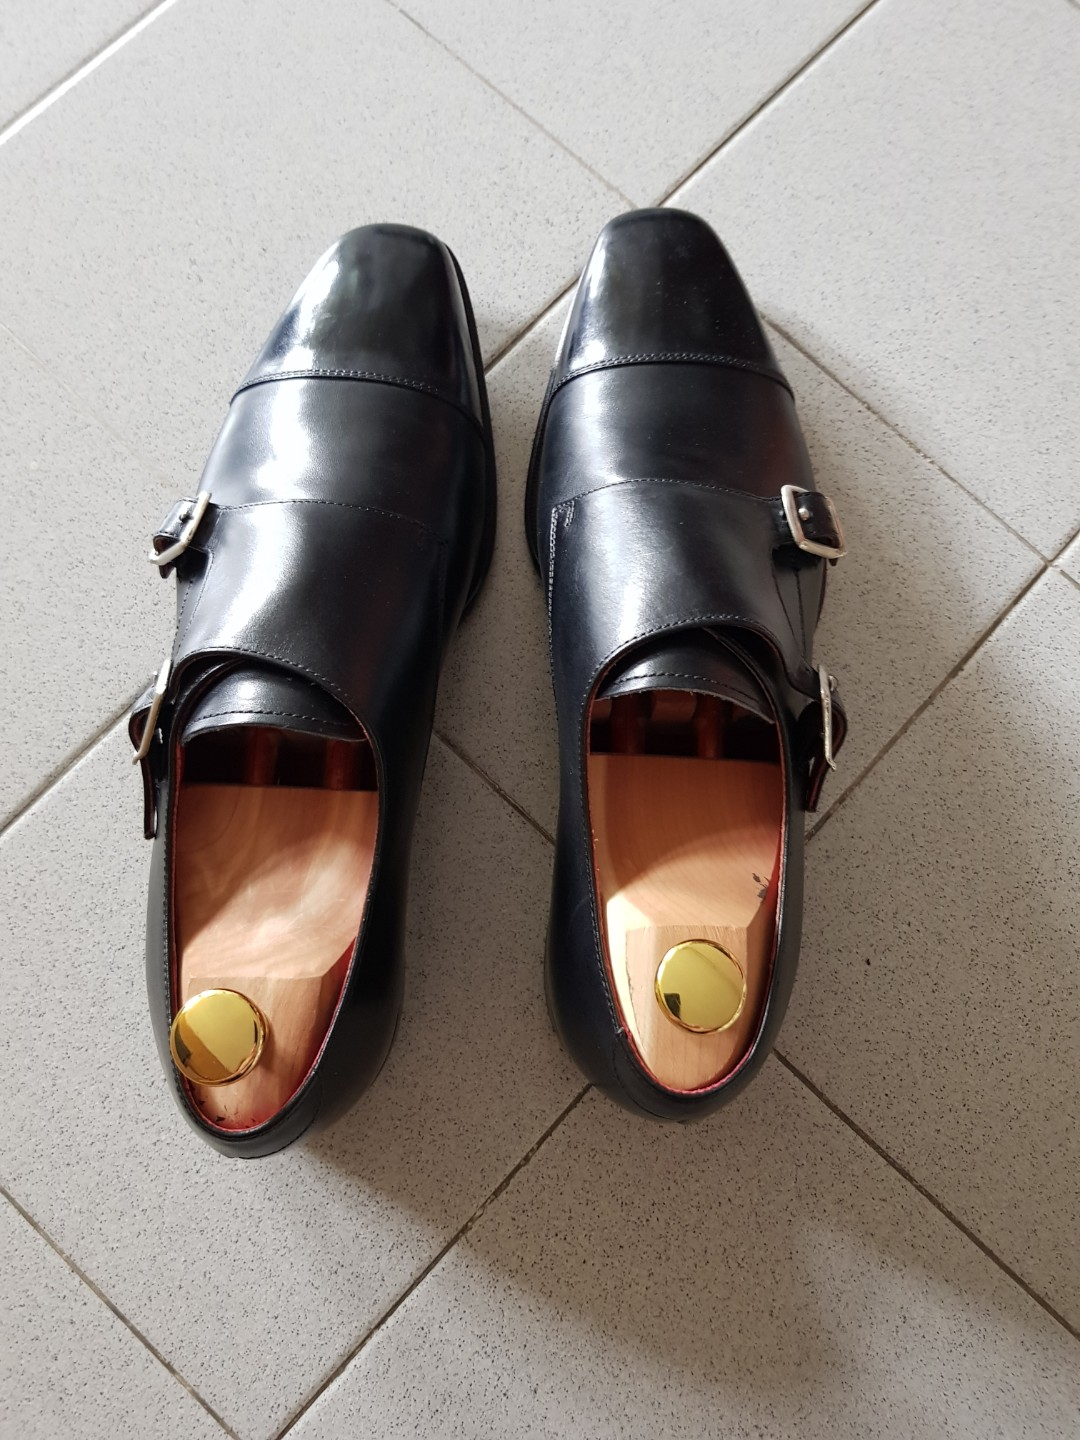 5cd0bc1c7c4 Good Work Shoes - Shoes Collections